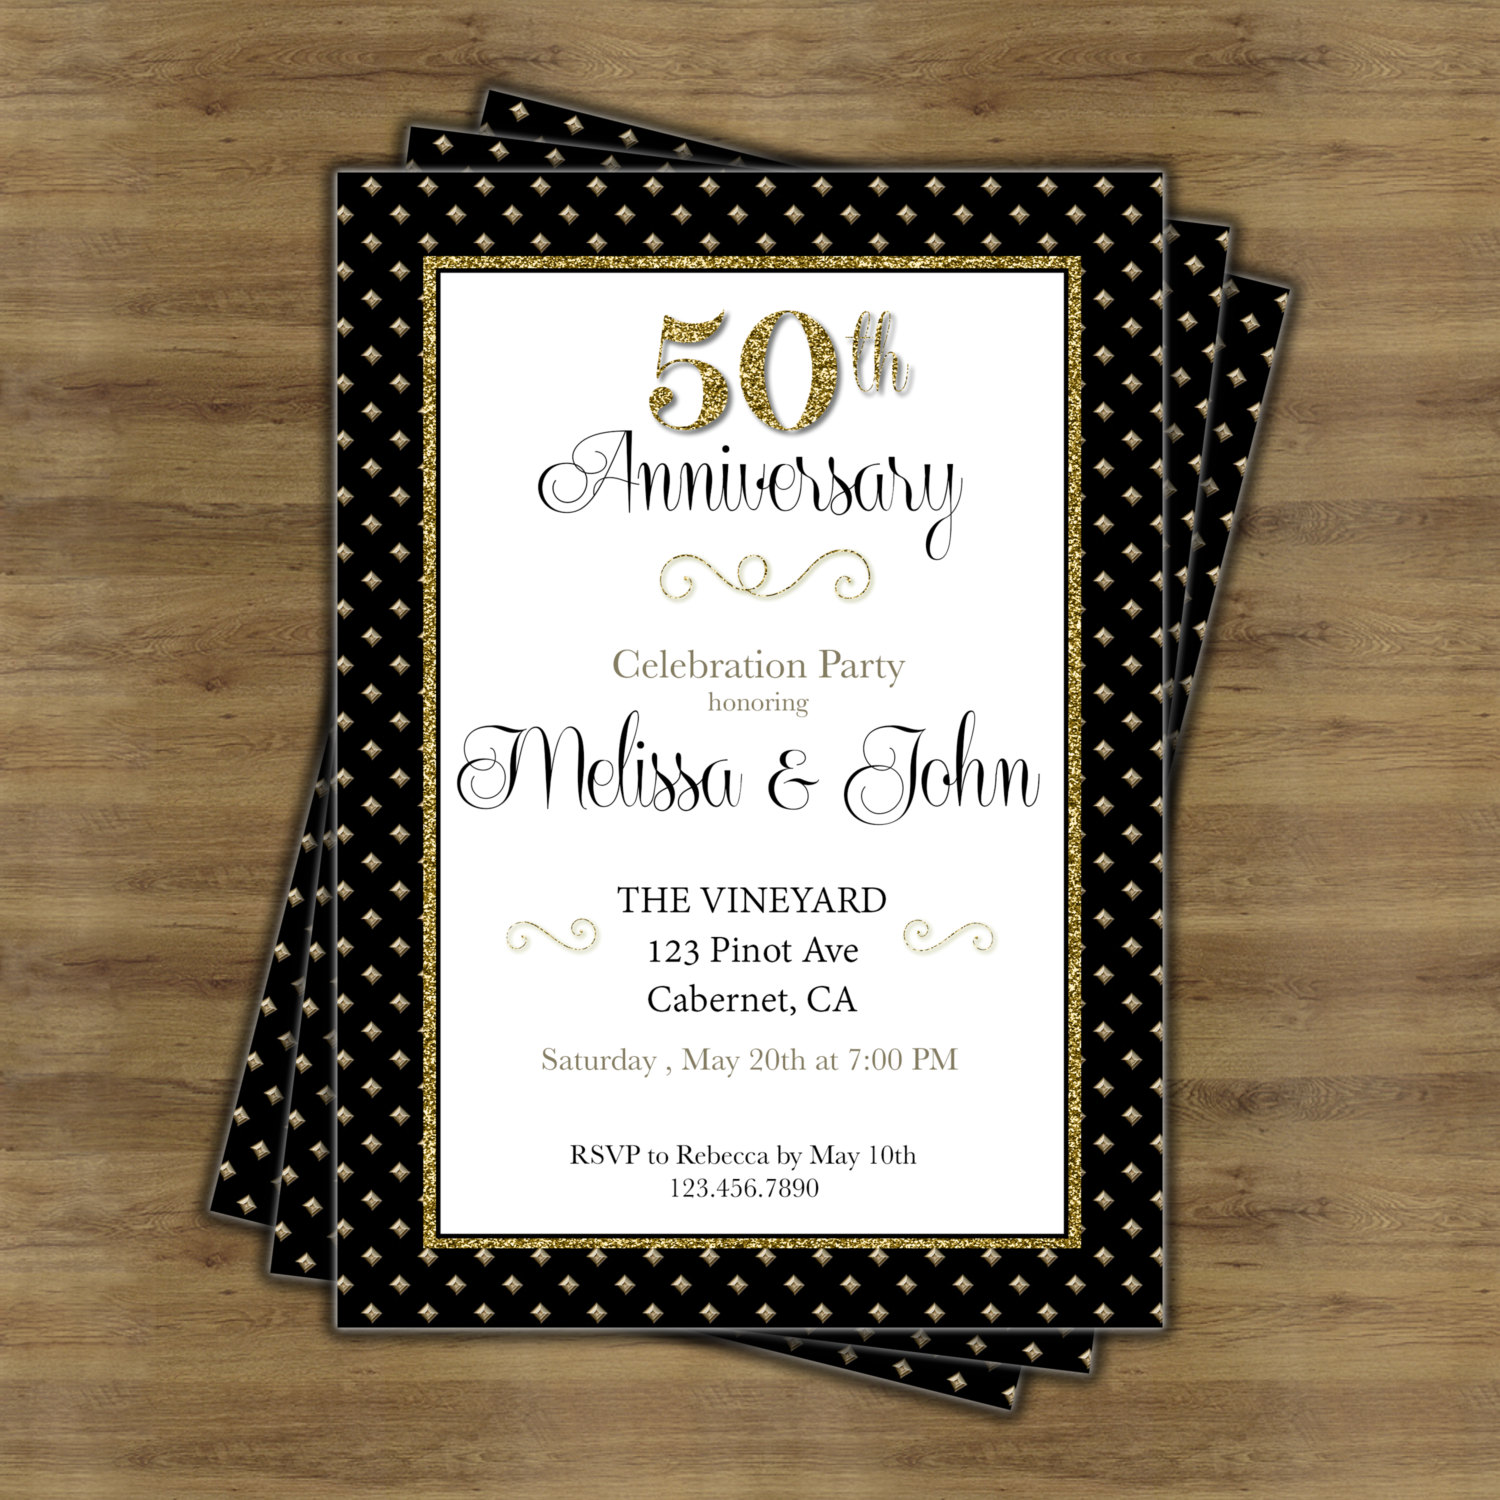 Wedding Anniversary Party Card